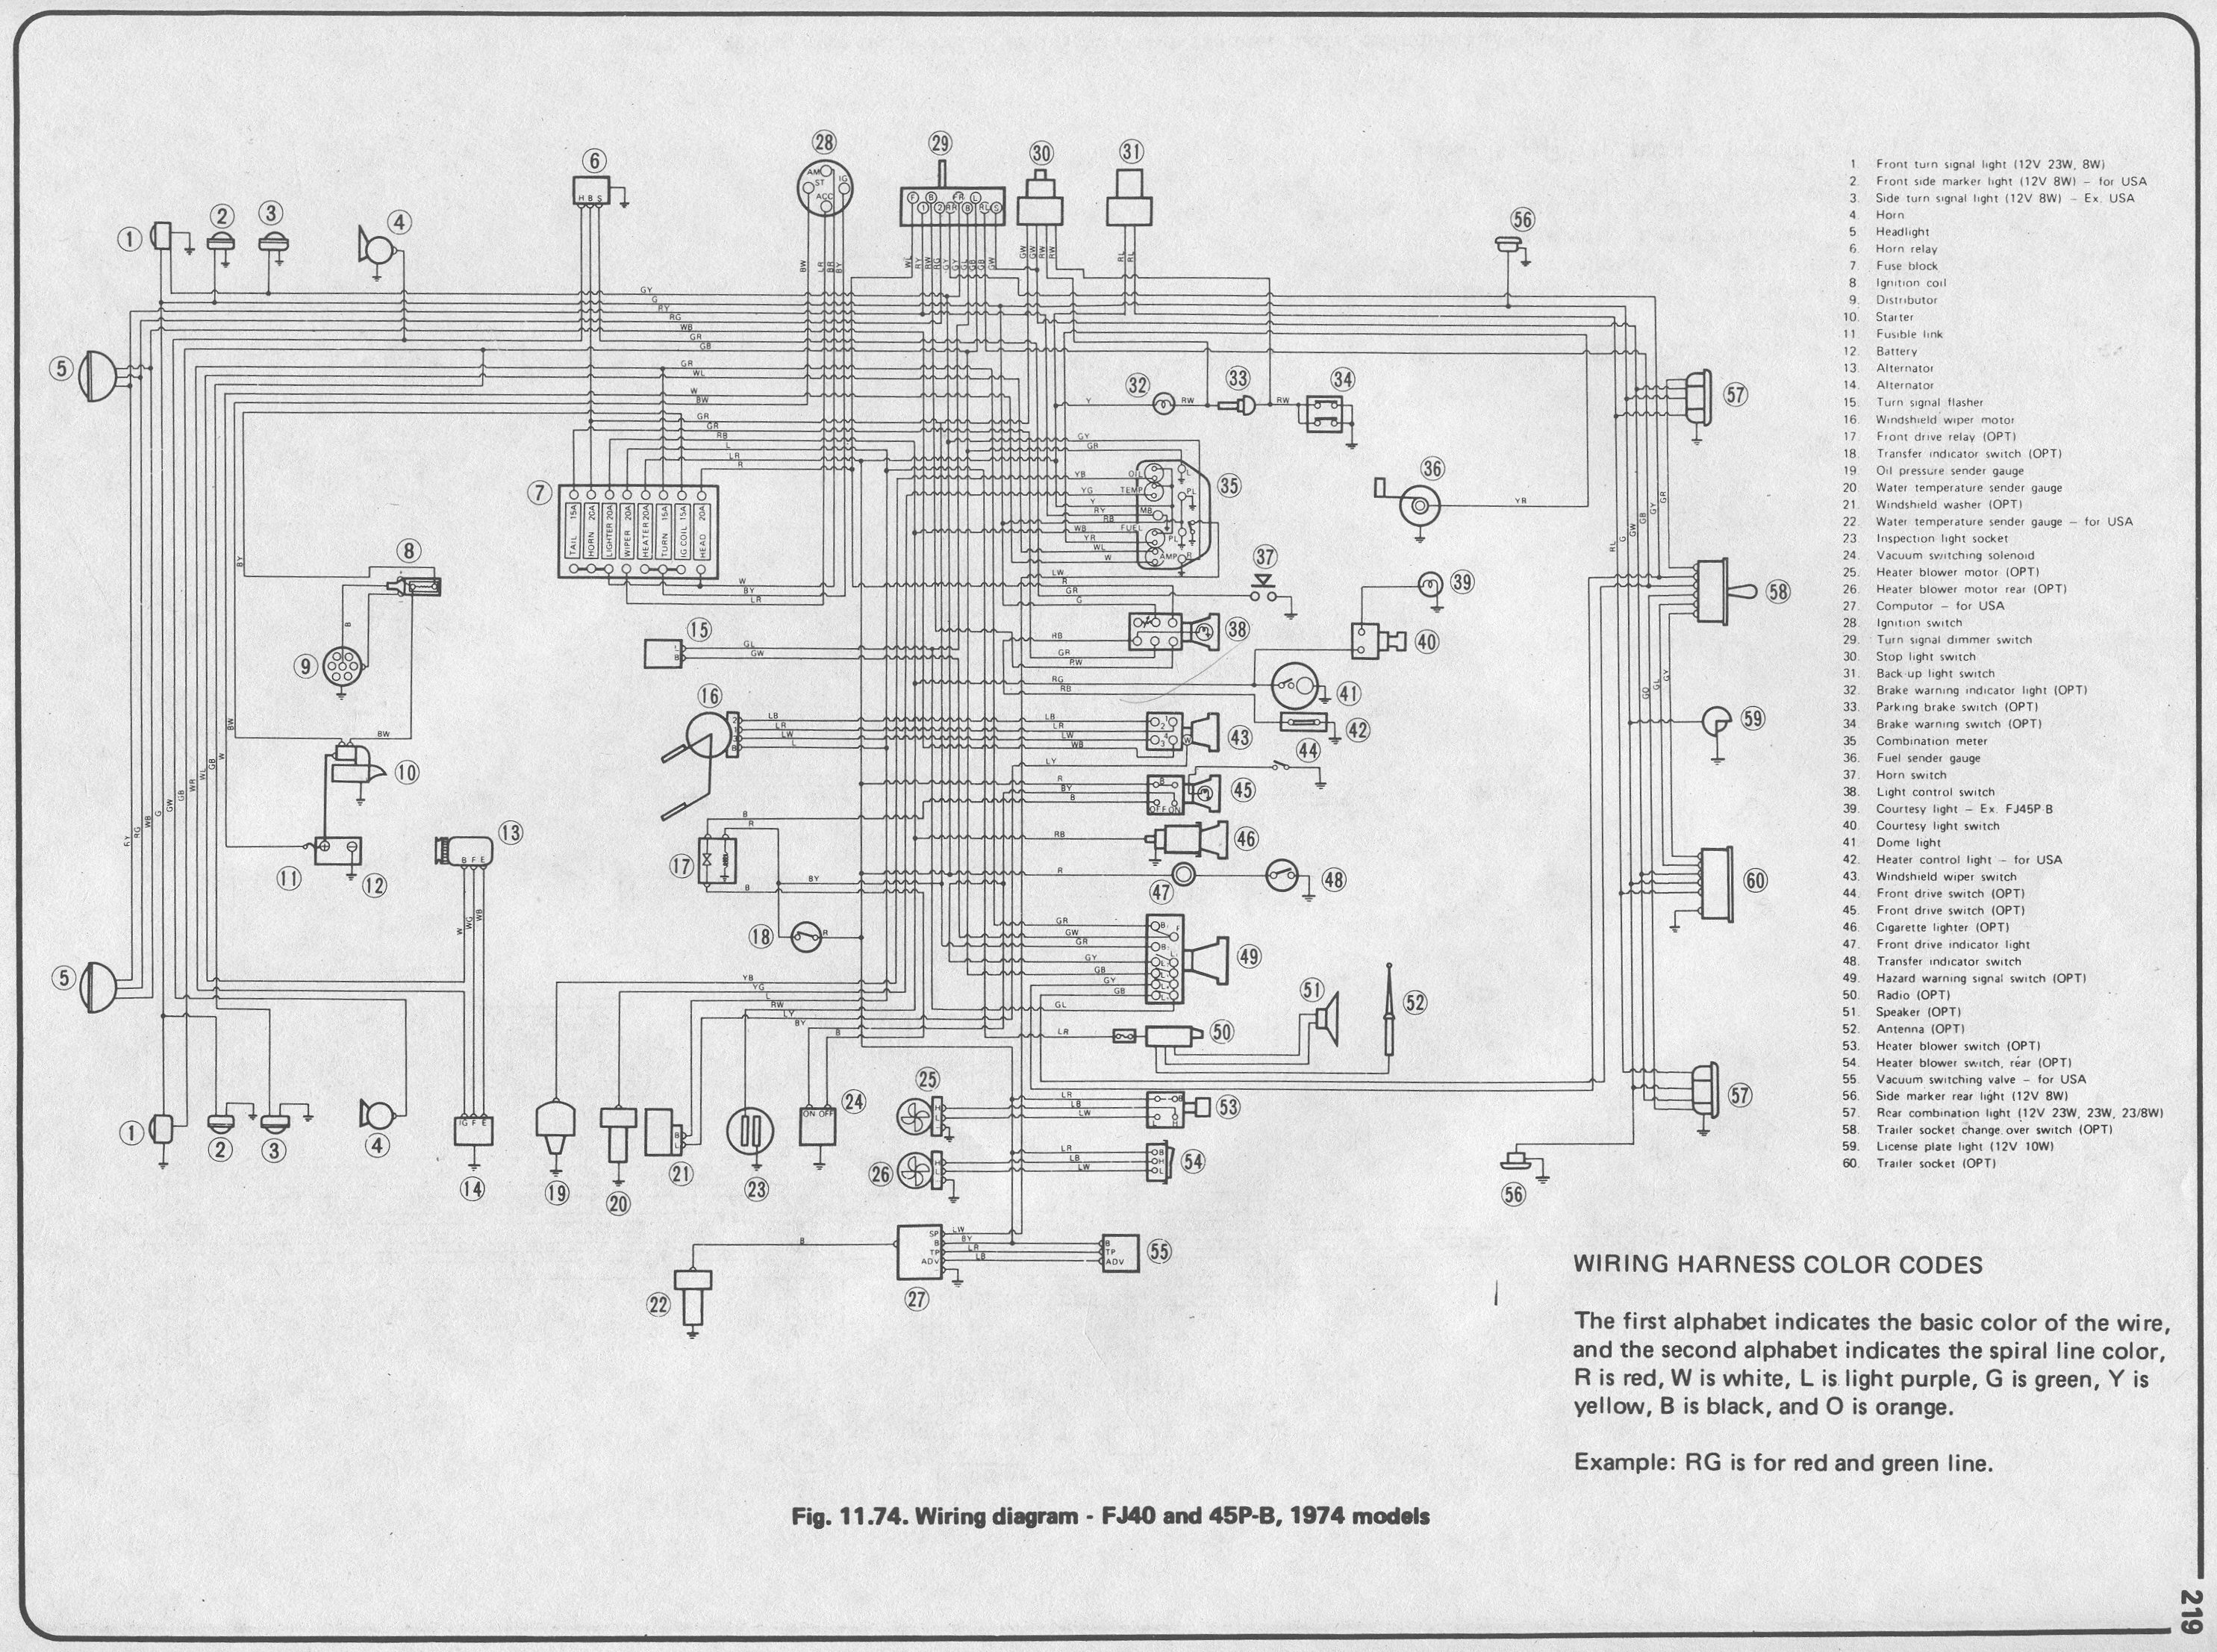 coolerman s electrical schematic and fsm file retrieval haynesfj401974 jpg